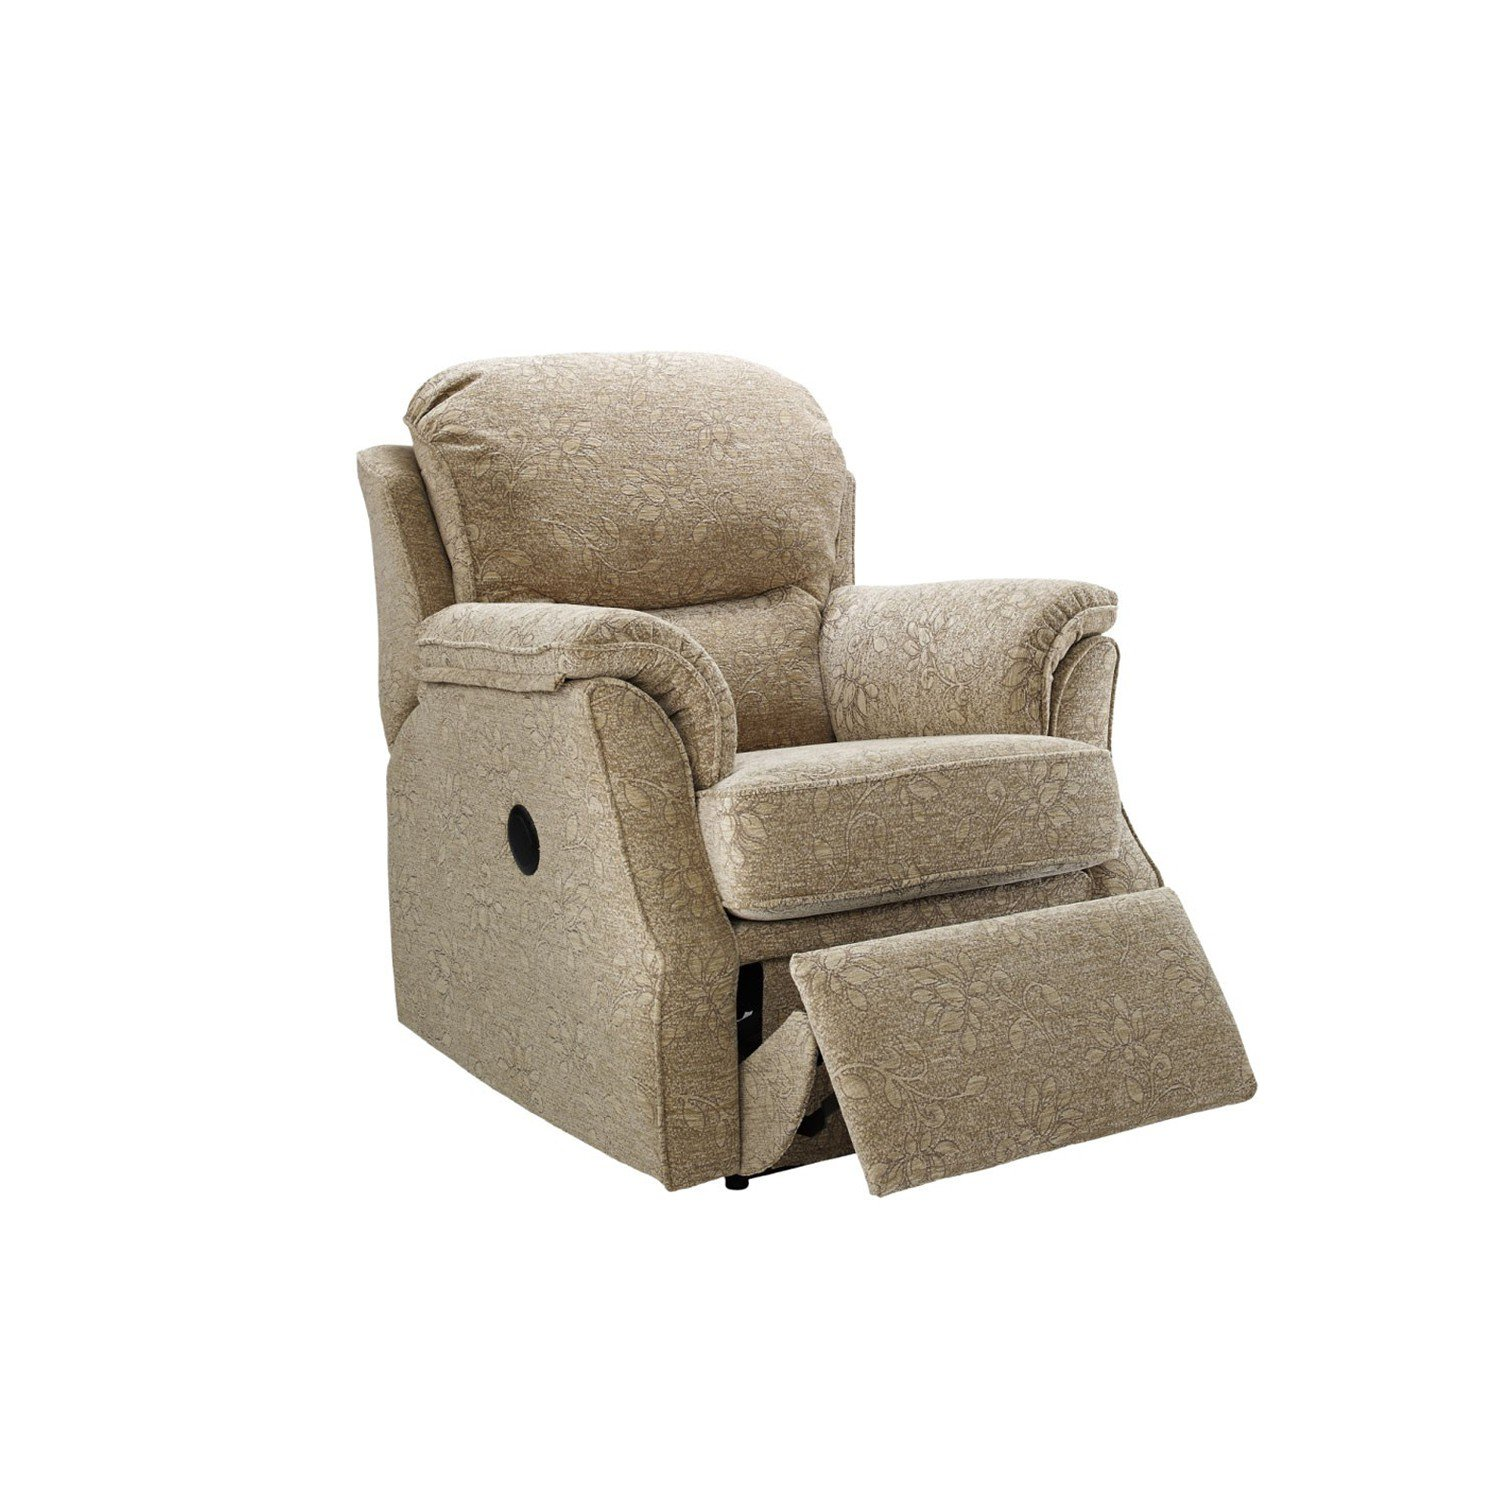 Stupendous Small Manual Recliner Chair Bralicious Painted Fabric Chair Ideas Braliciousco